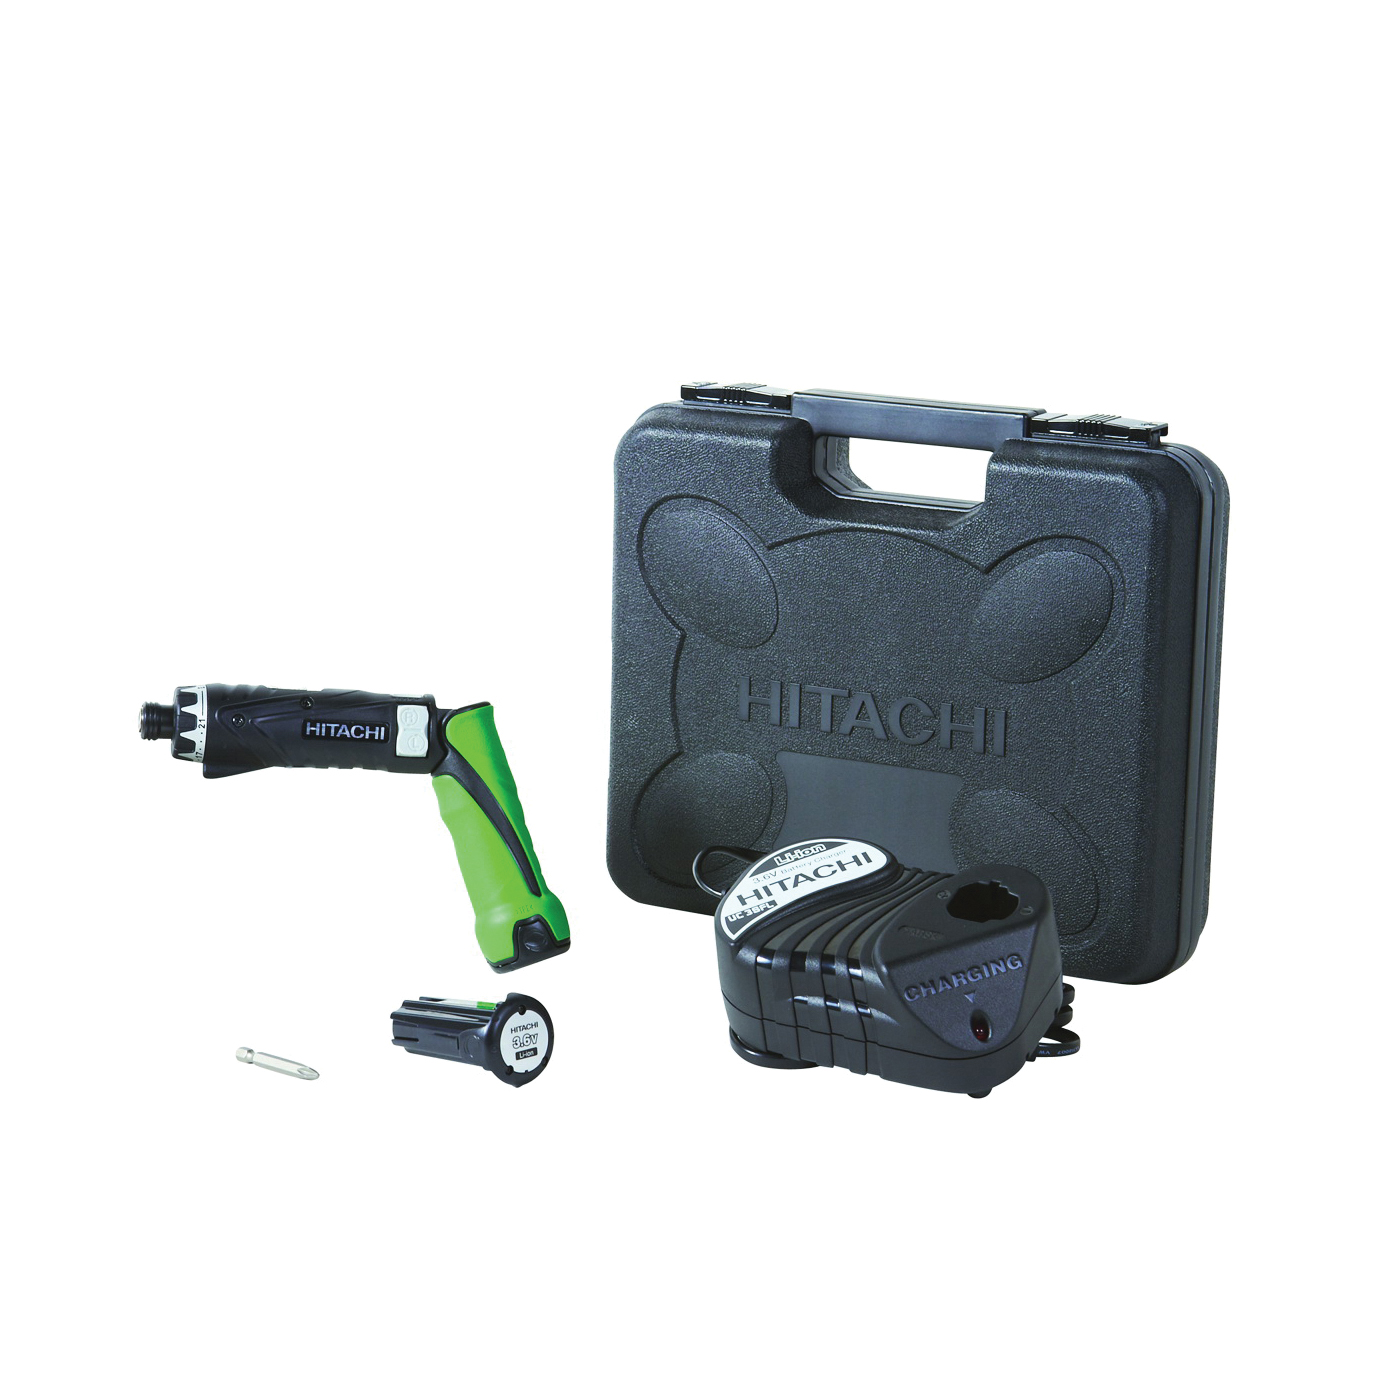 Picture of HITACHI DB3DL2 Adjustable In-Line Screwdriver Kit, Kit, 3.6 V Battery, 1.5 Ah, 1/4 in Chuck, Hexagonal Chuck